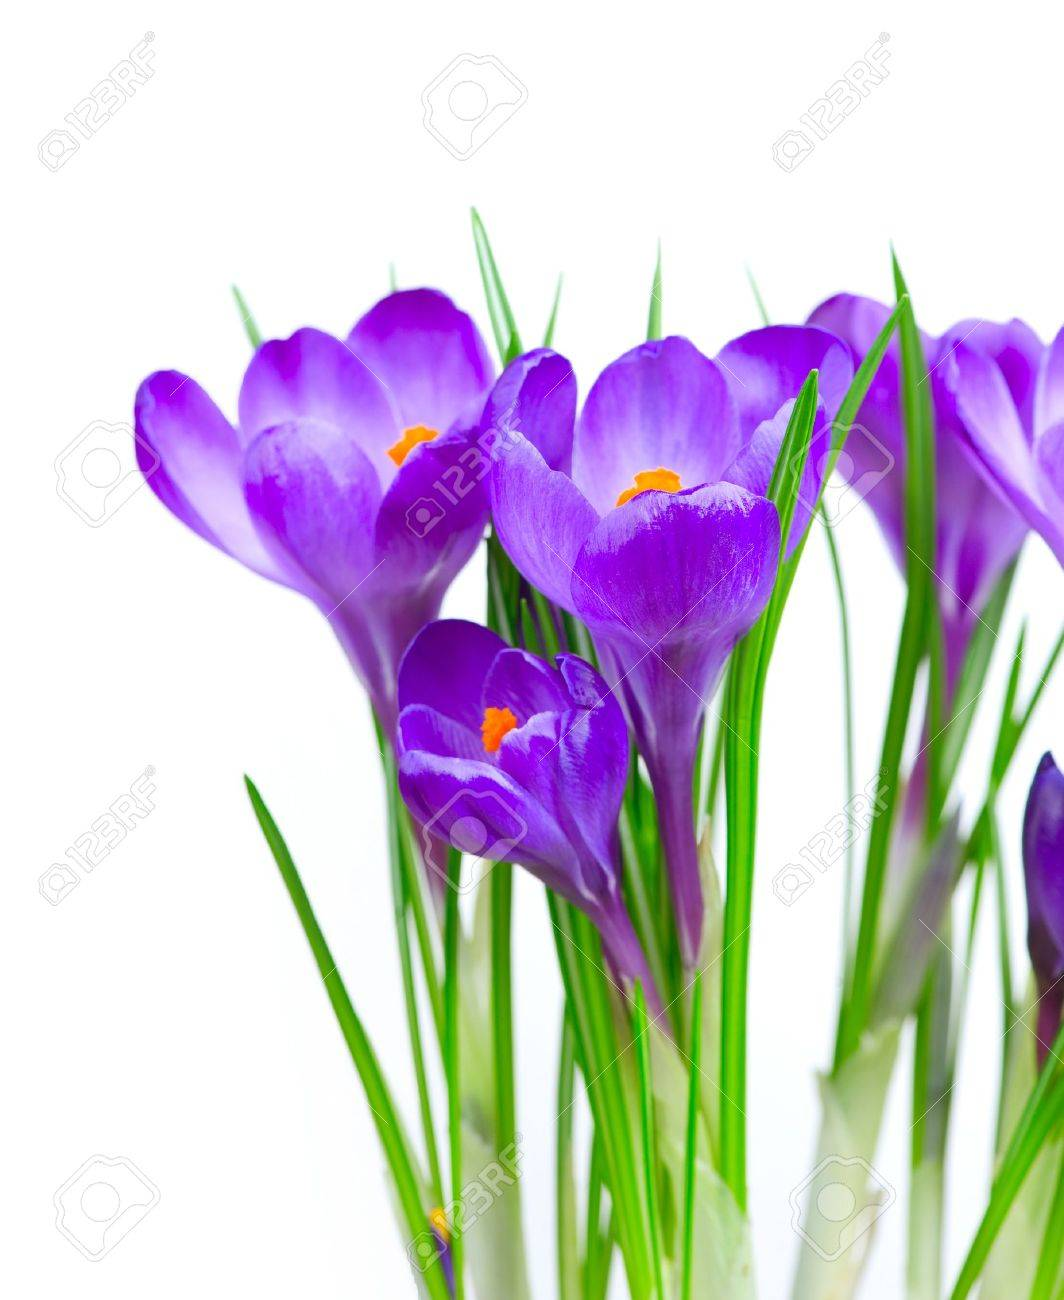 Crocus spring flowers stock photo picture and royalty free image crocus spring flowers stock photo 13064642 mightylinksfo